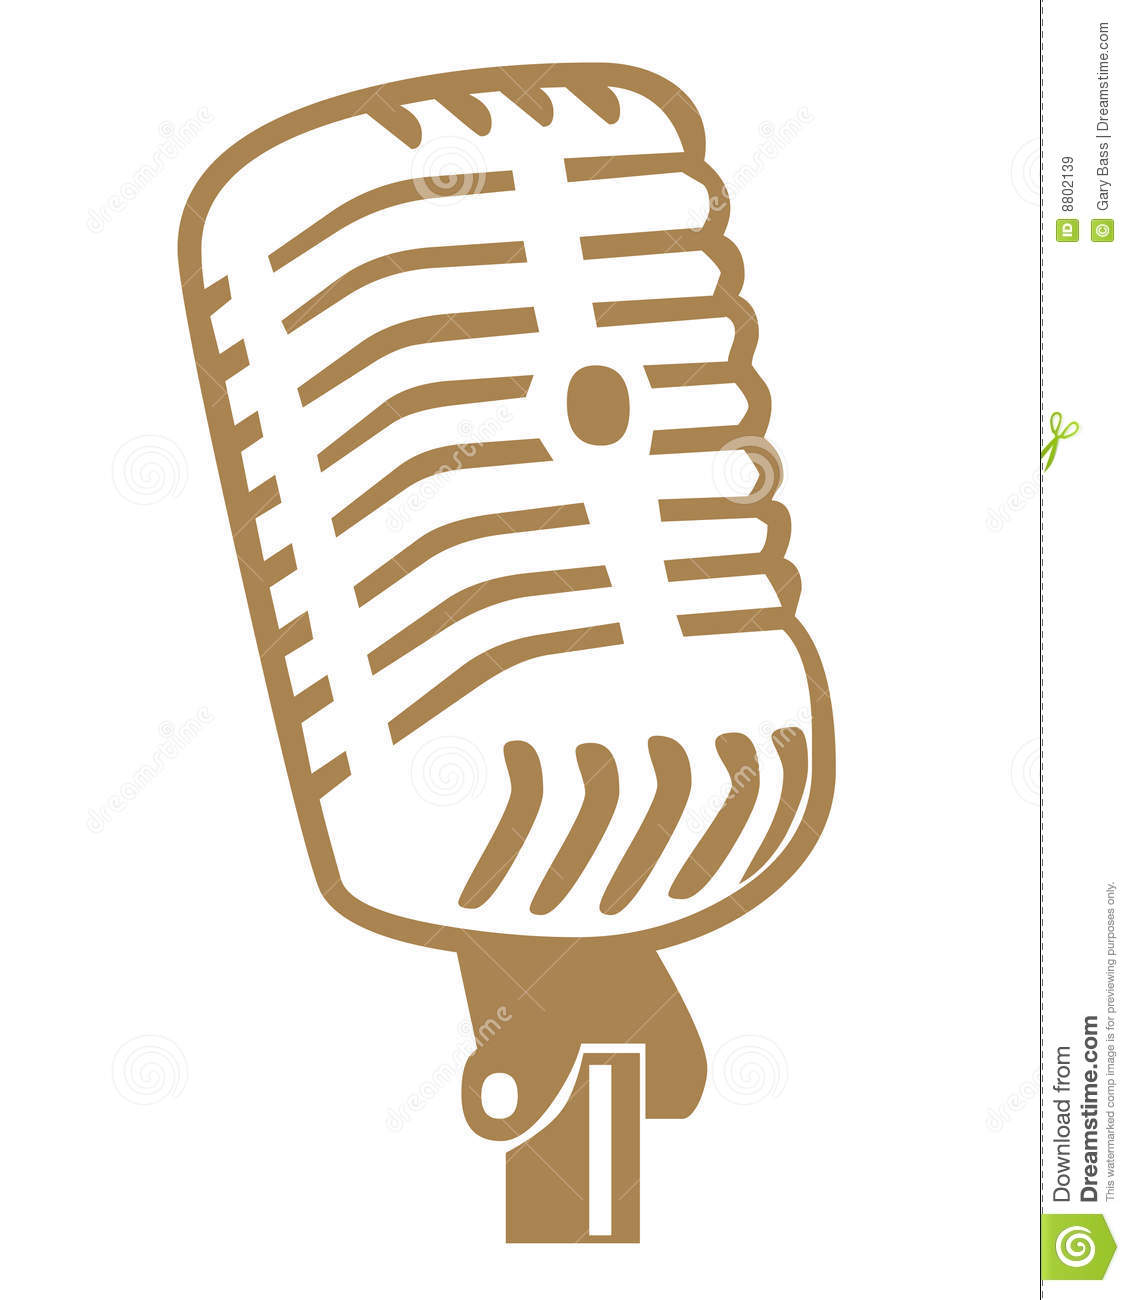 Microphone Symbols Royalty Free Stock Images